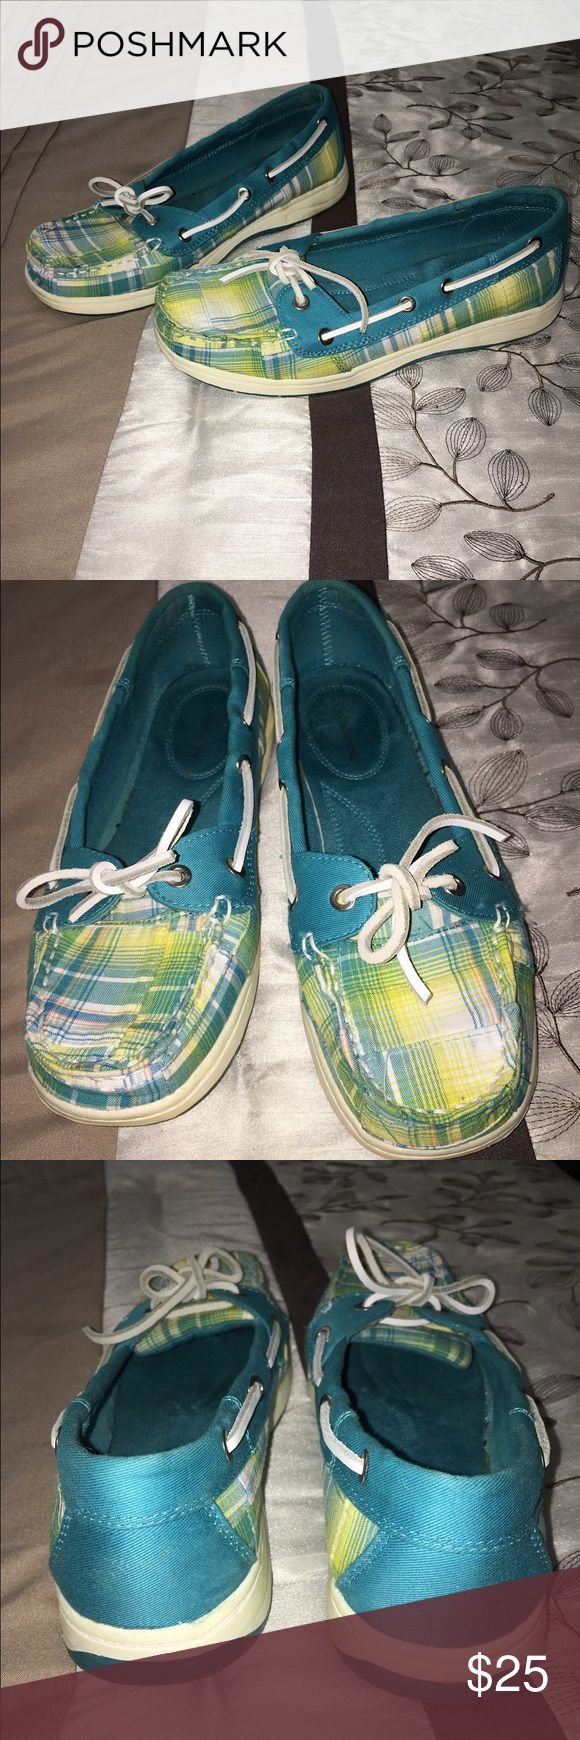 CROFT&BARROW BOAT SHOES CROFT&BARROW TURQUOISE  YELLOW N WHITE BOAT SHOES WORE ONE TIME EXCELLENT CONDITION SIZE 7M croft & barrow Shoes Flats & Loafers